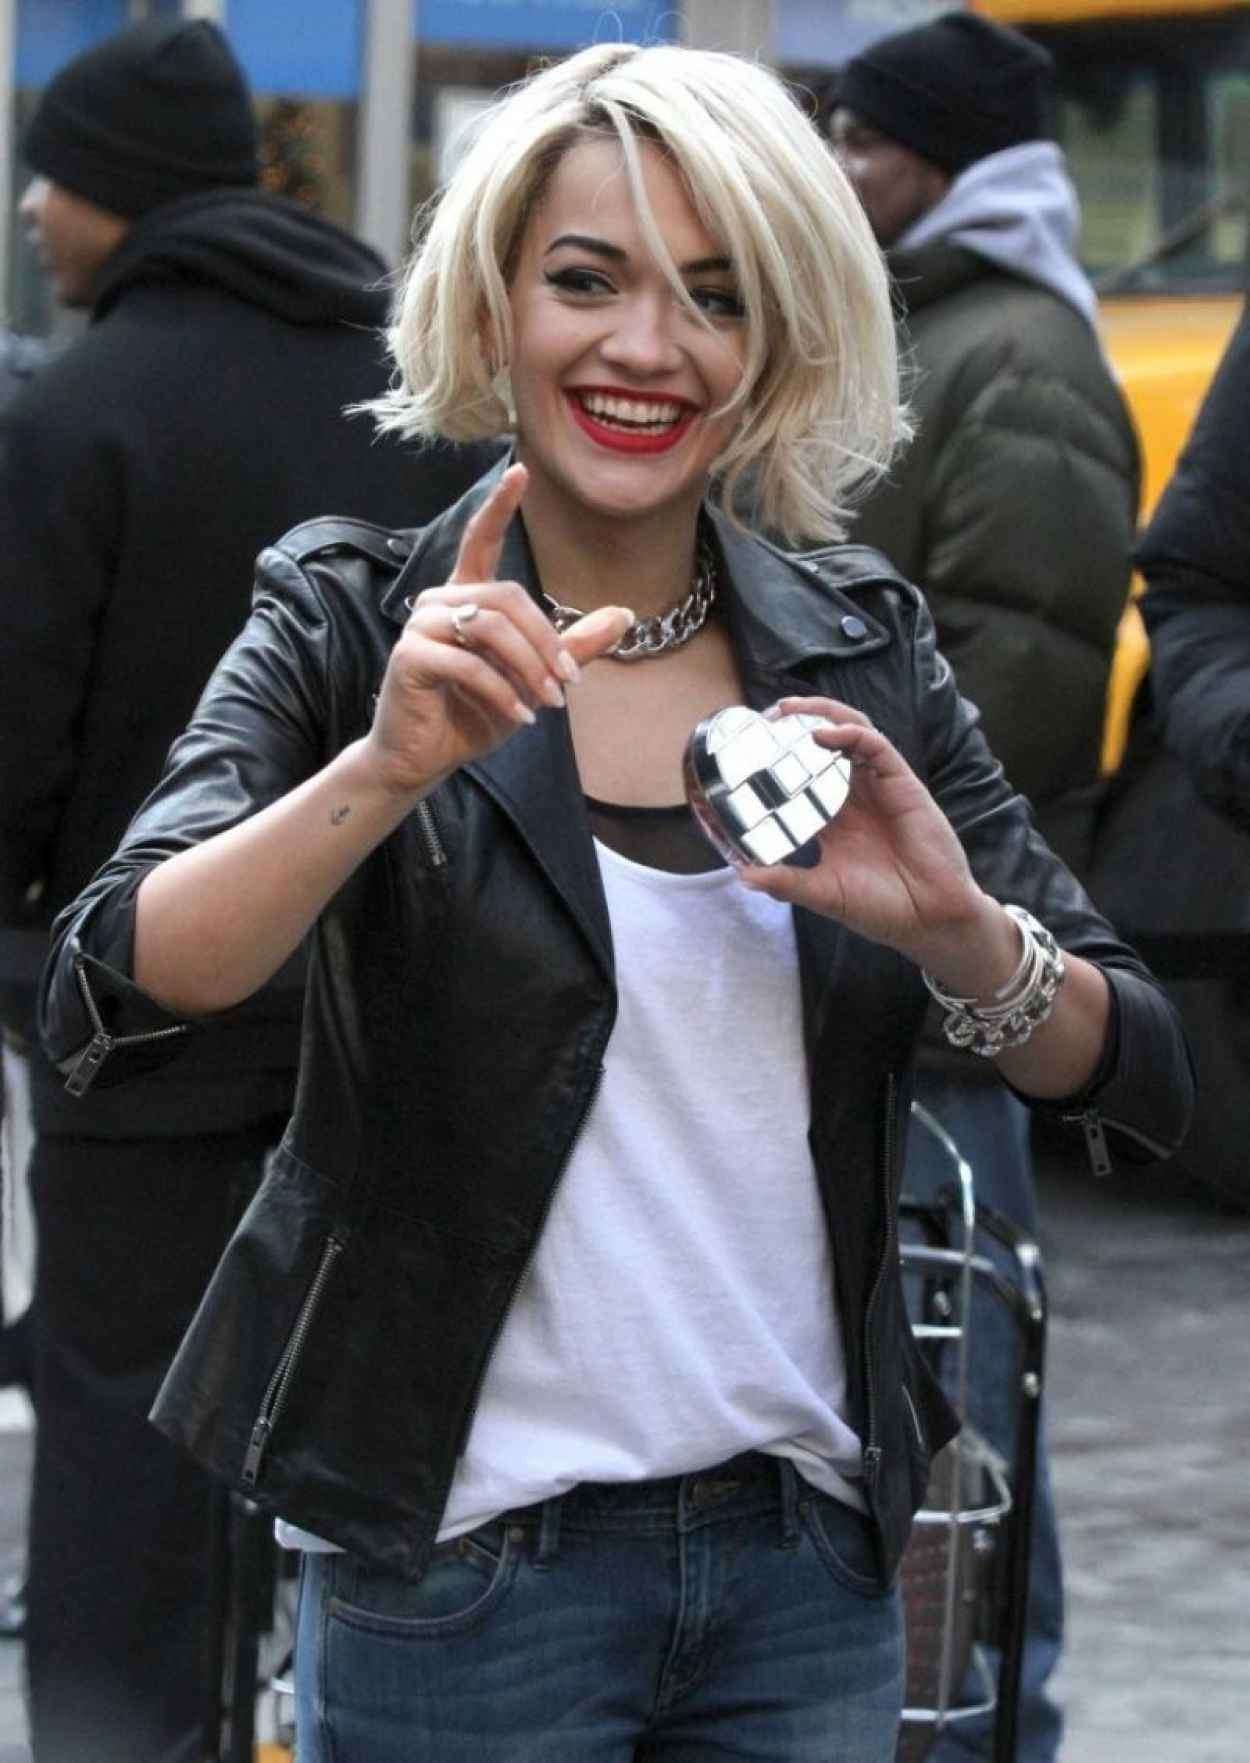 Rita Ora - On set of a DKNY Photoshoot in New York City - Dec. 2015-1